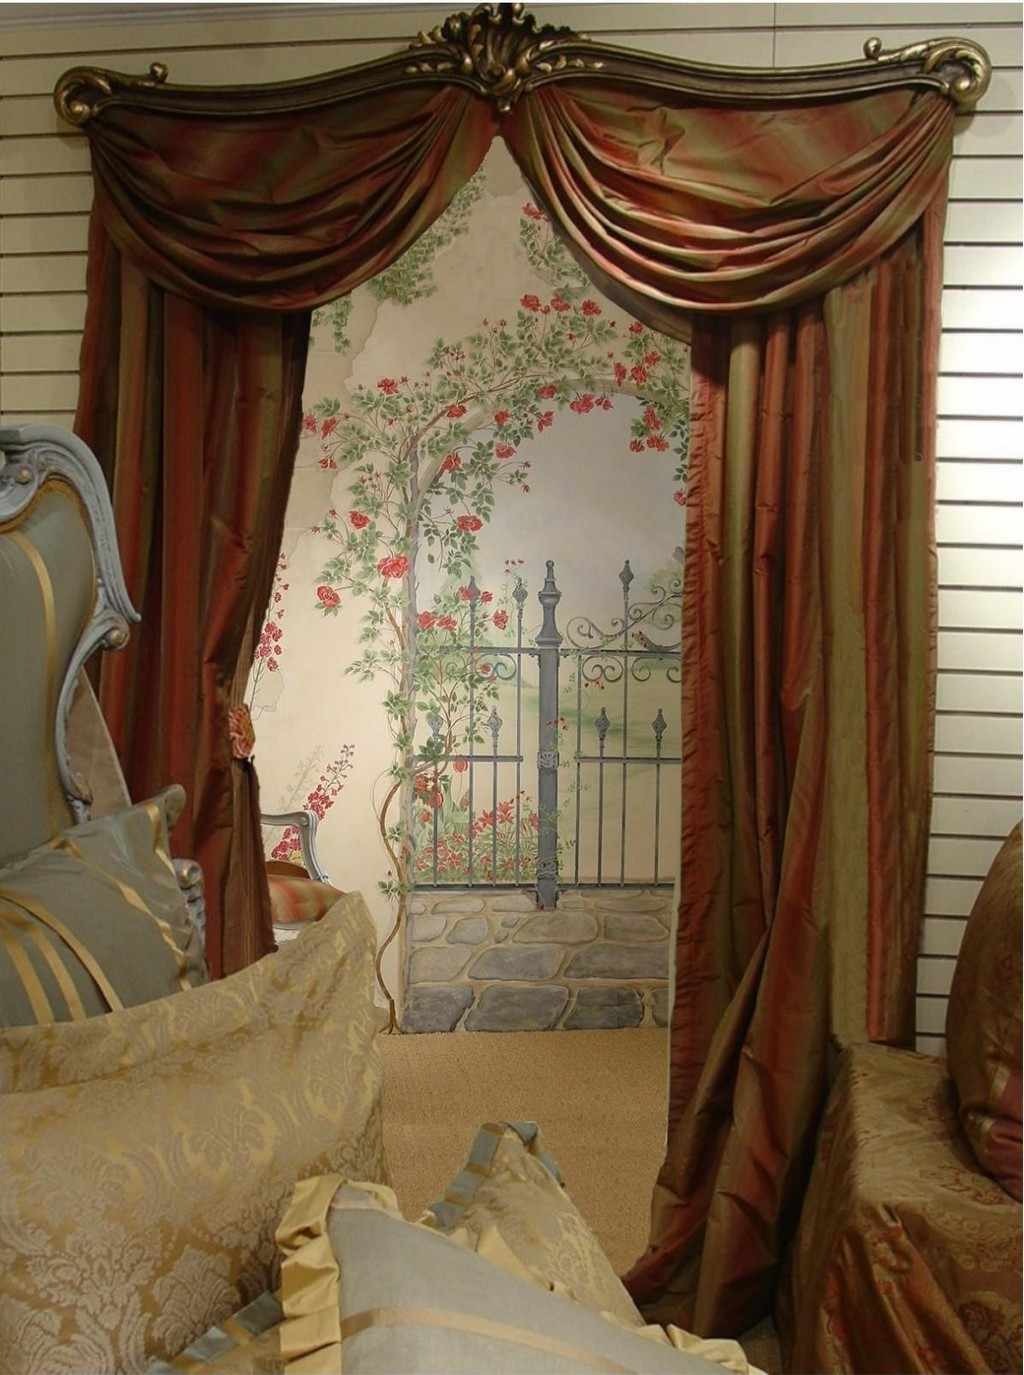 lace curtains, comforters set, curtains drapes, curtains drapes